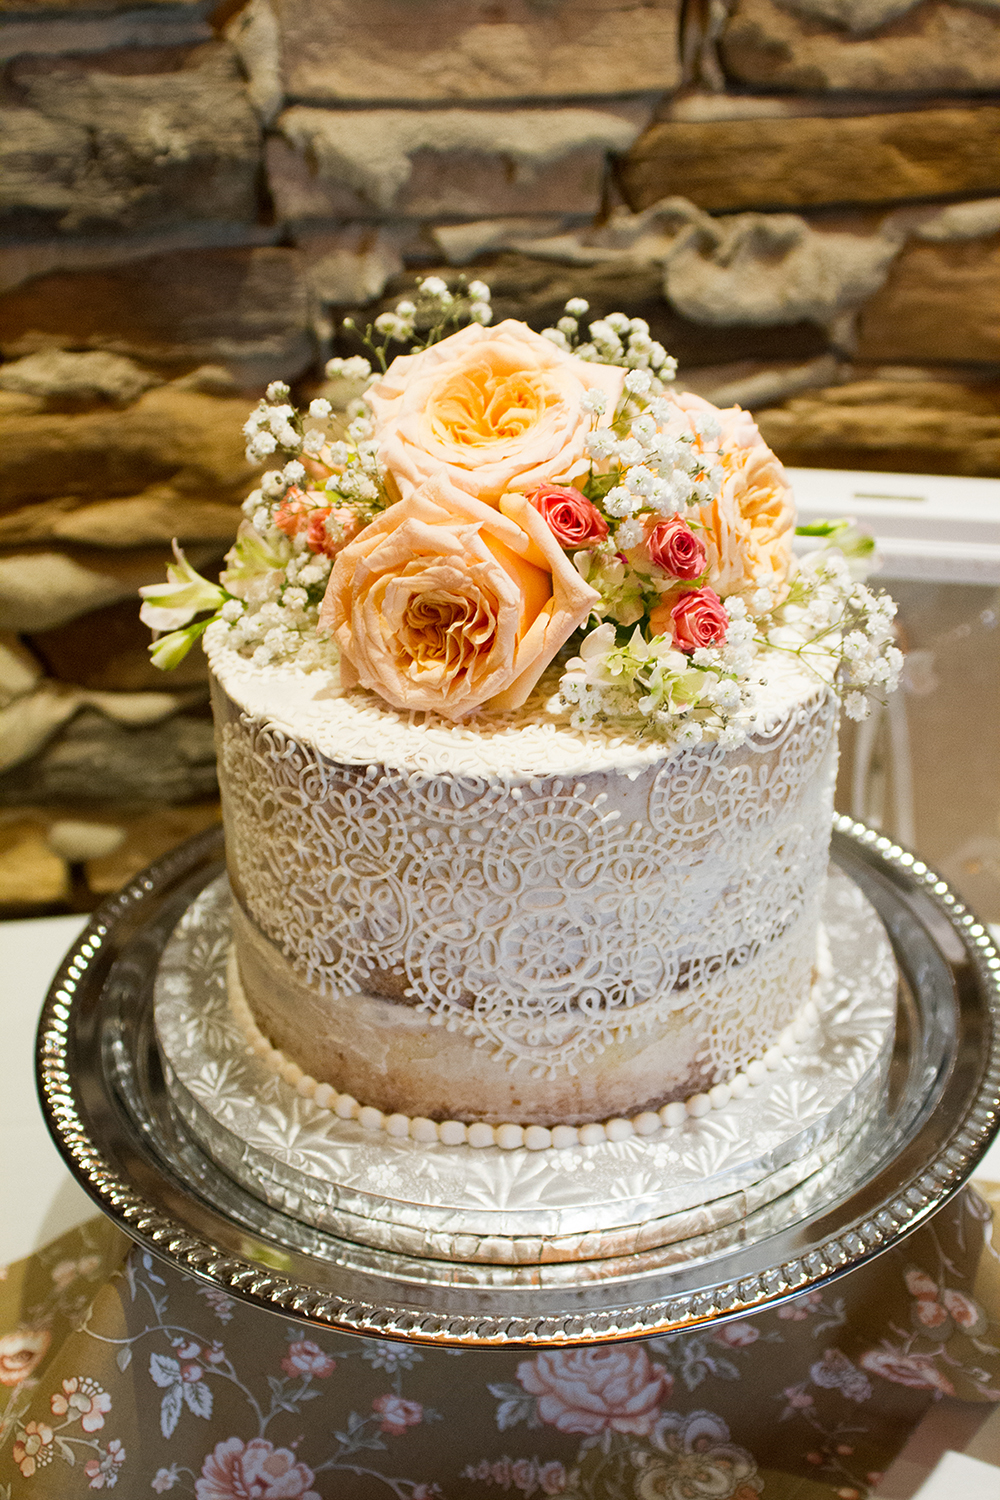 Cake with Lace and Flowers | Edible Art Bakery of Raleigh